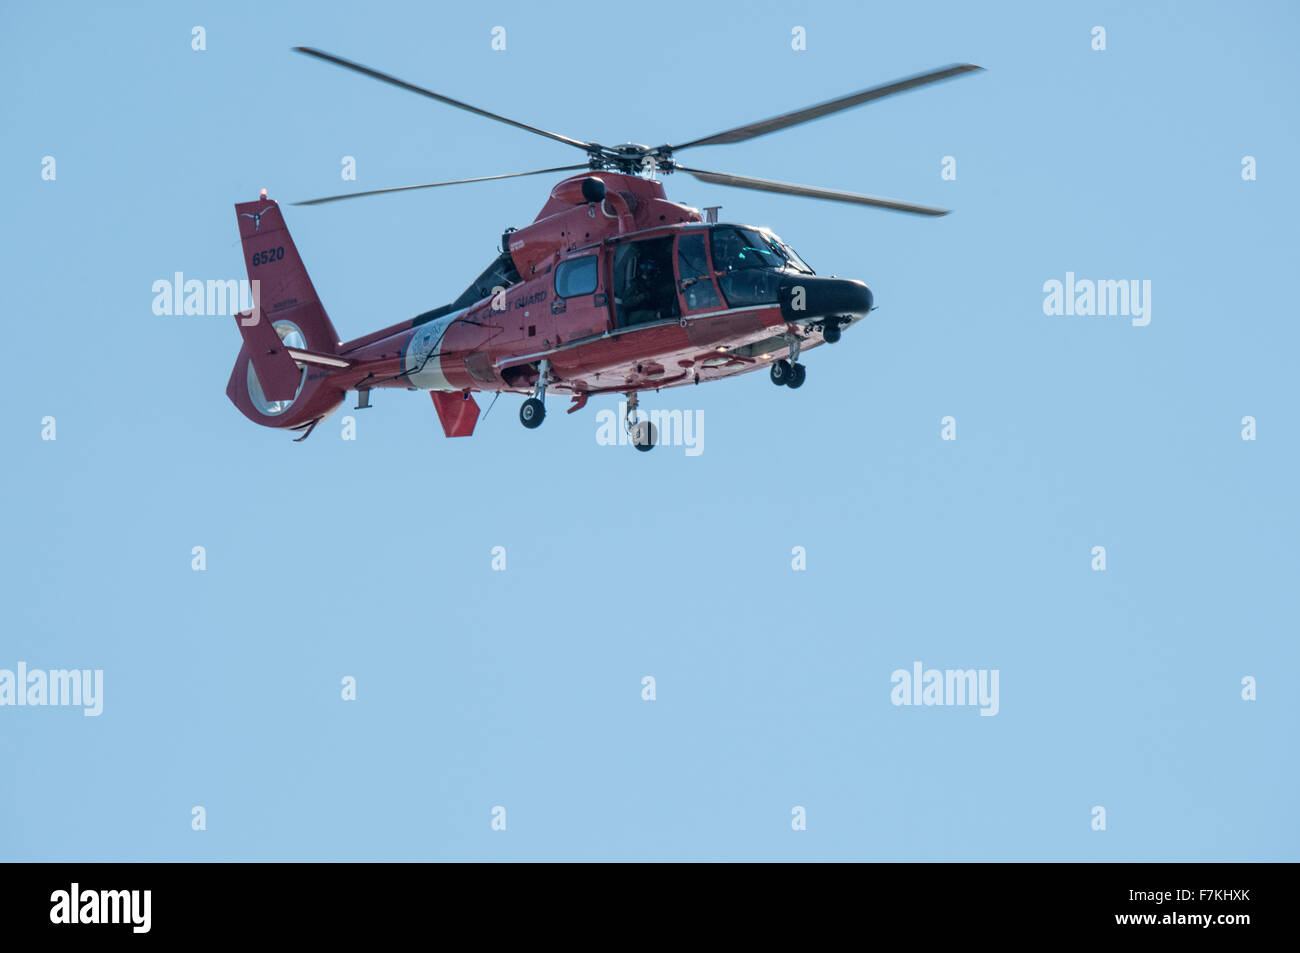 Coast Guard helicopter - Stock Image